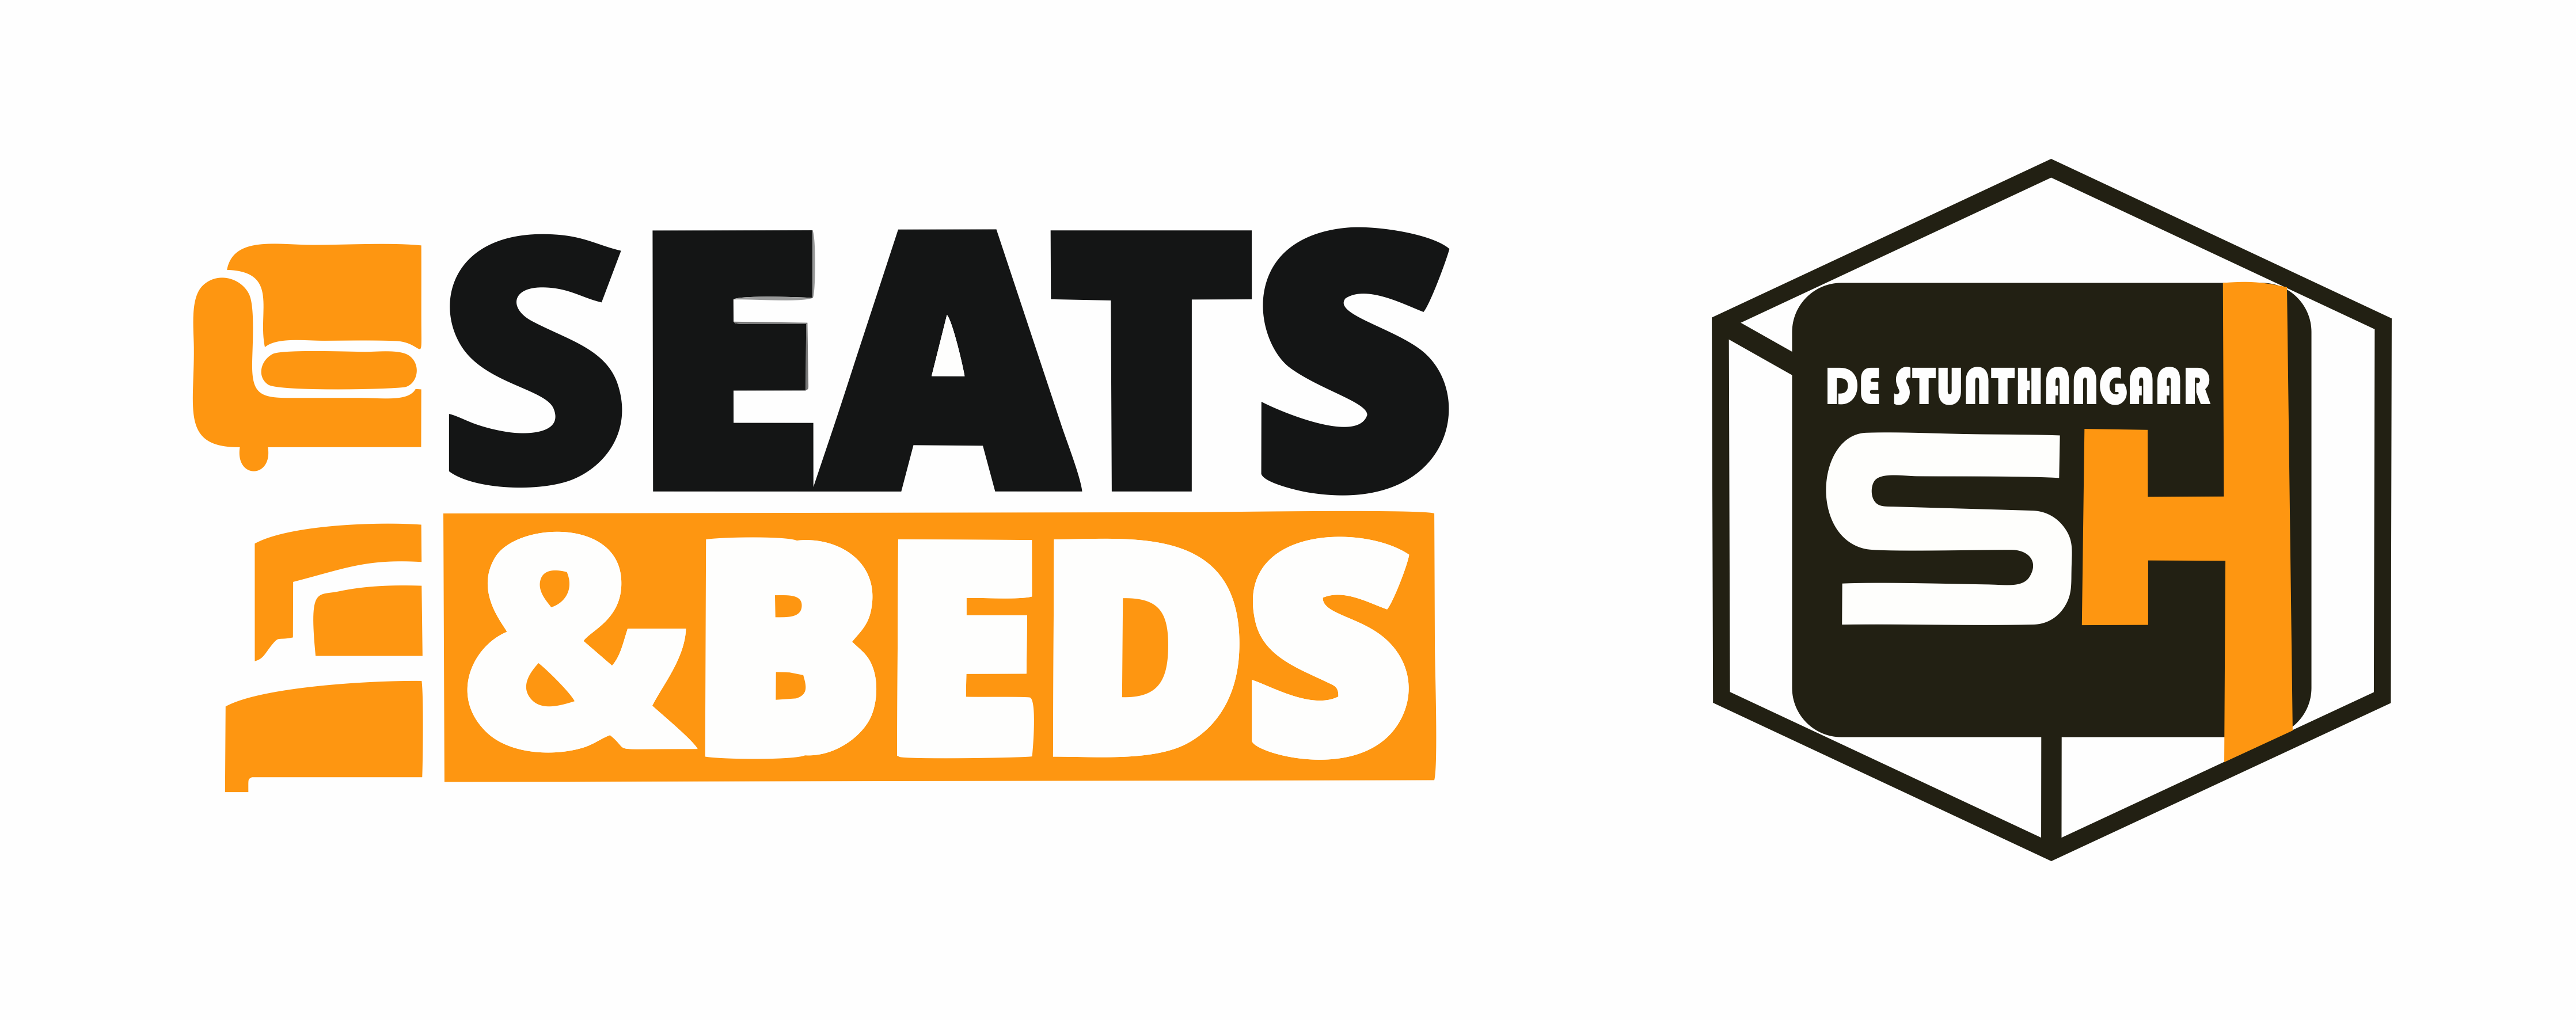 Seats and Beds - De Stunthangaar